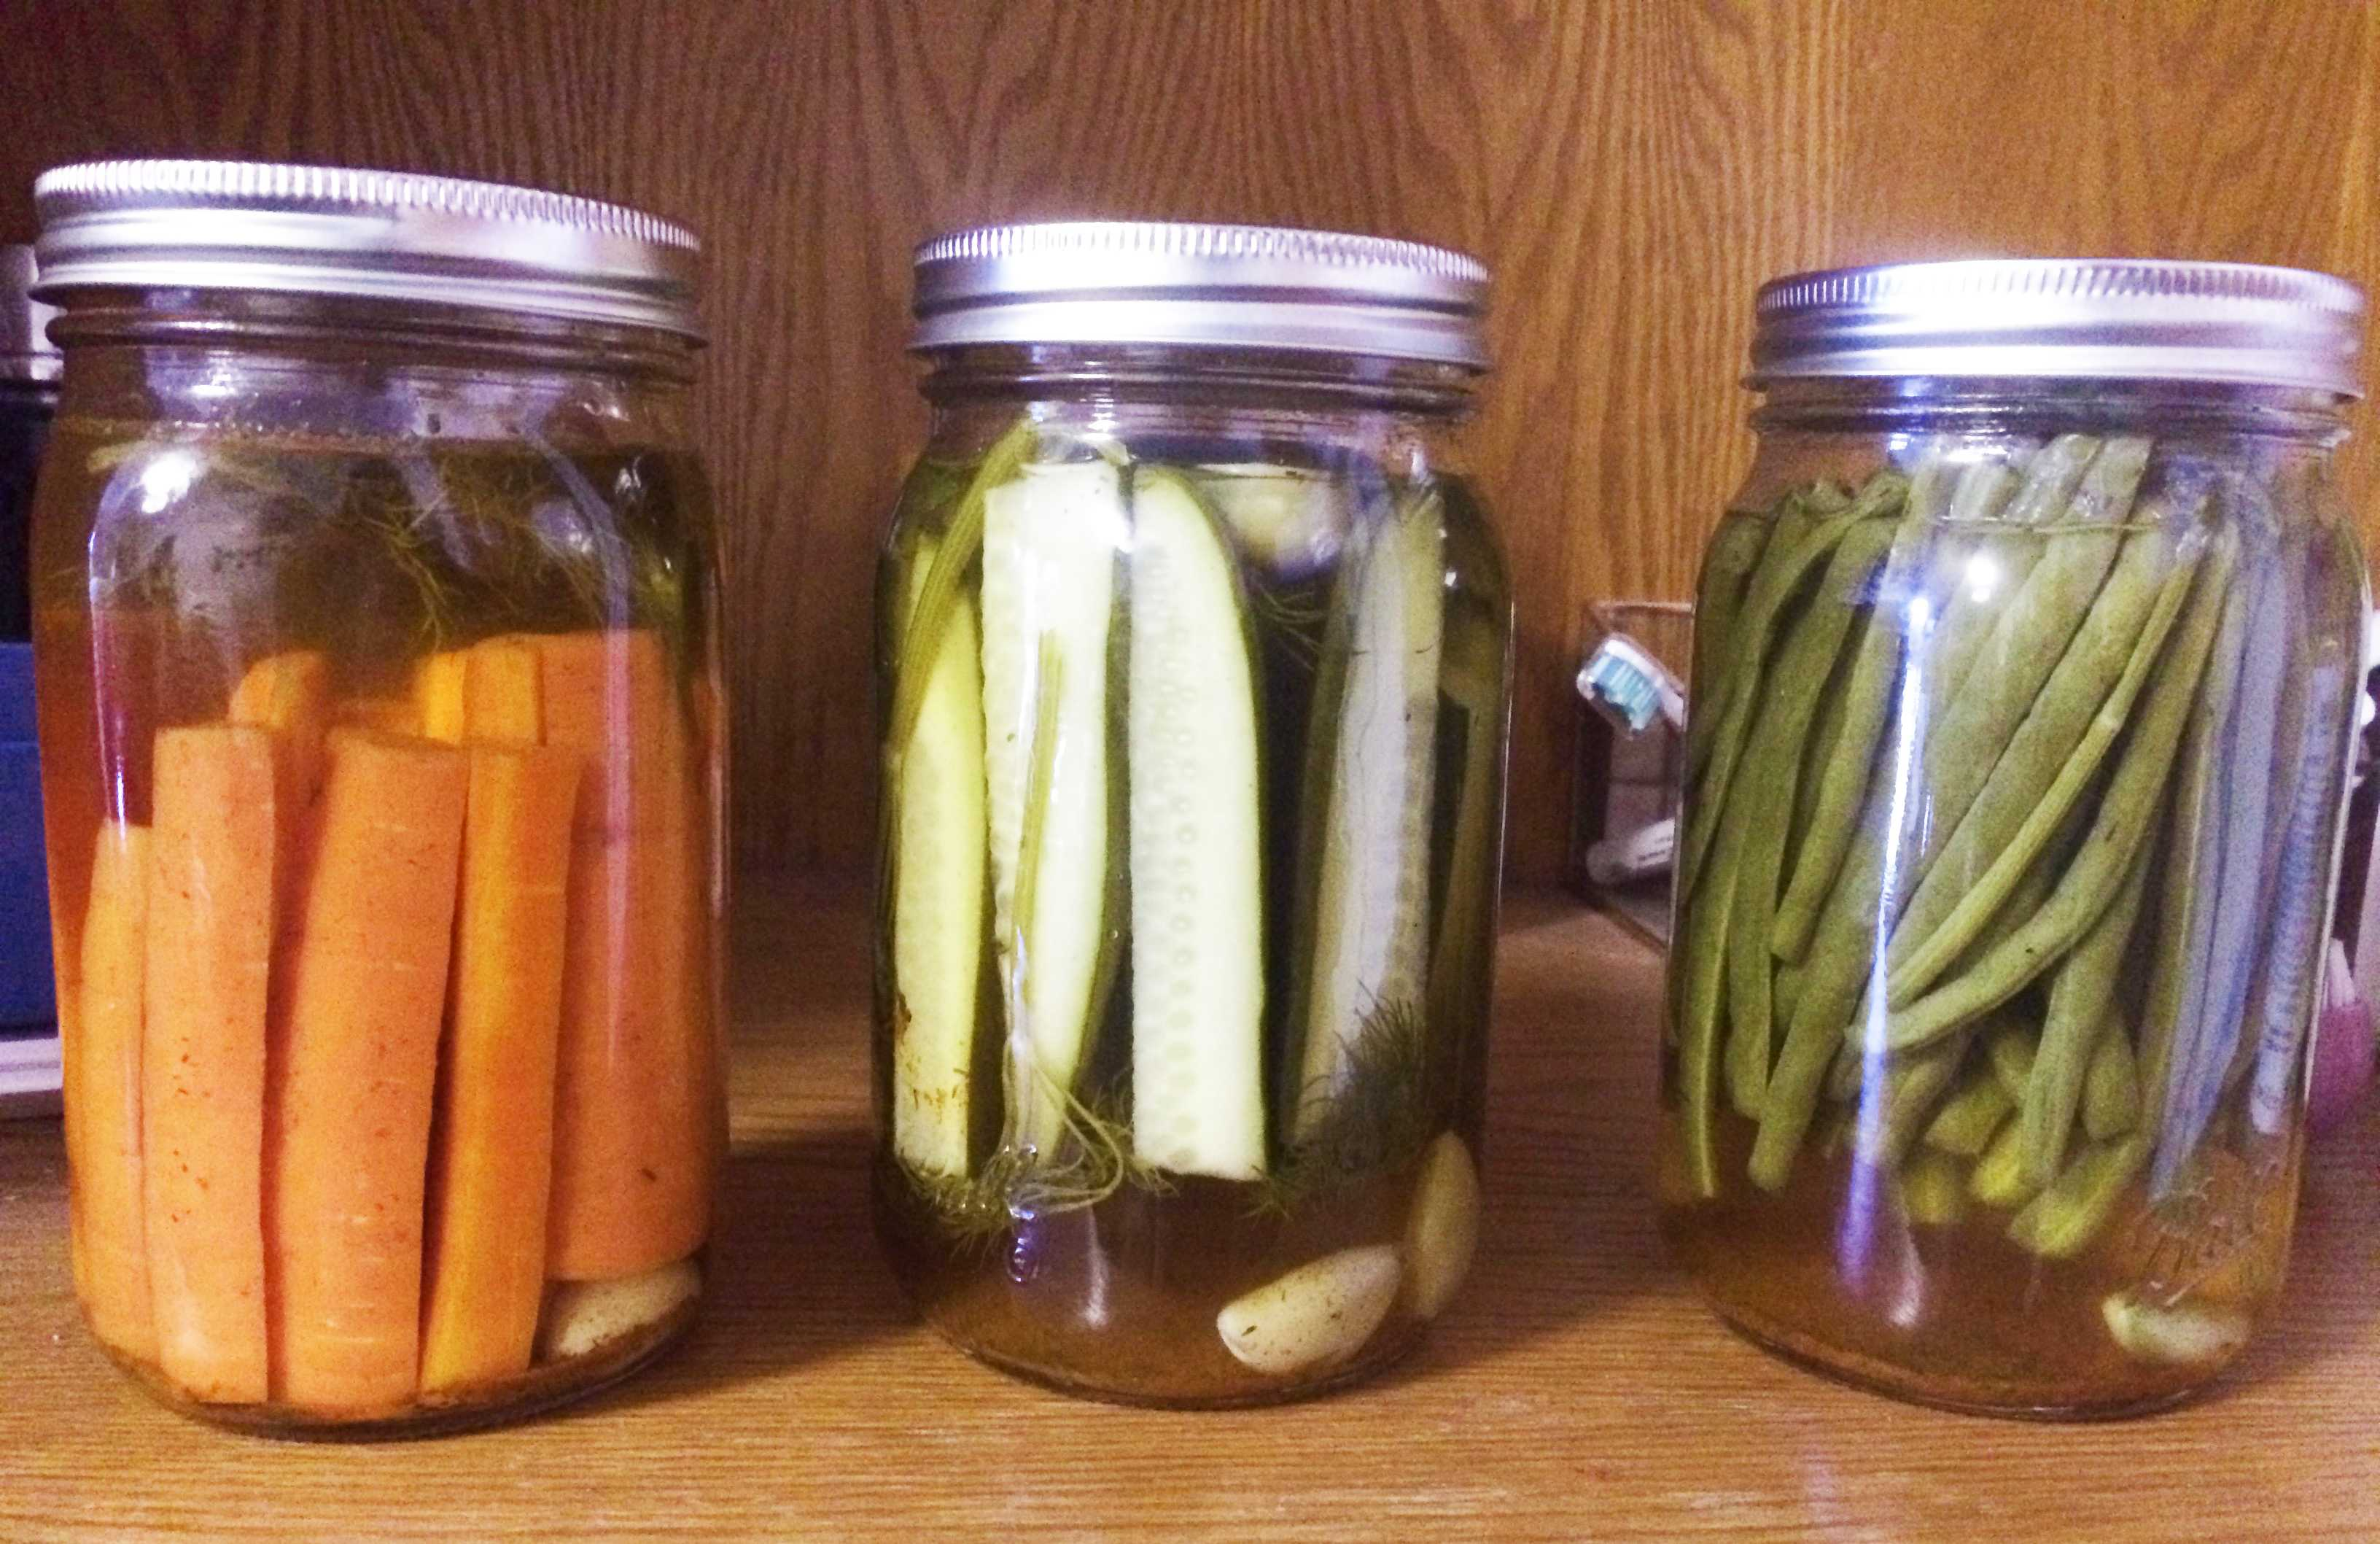 Pickled carrots, cucumbers and green beans from Gallandt, Fried and Jones' first batch. Photo by Nora Fried '22.